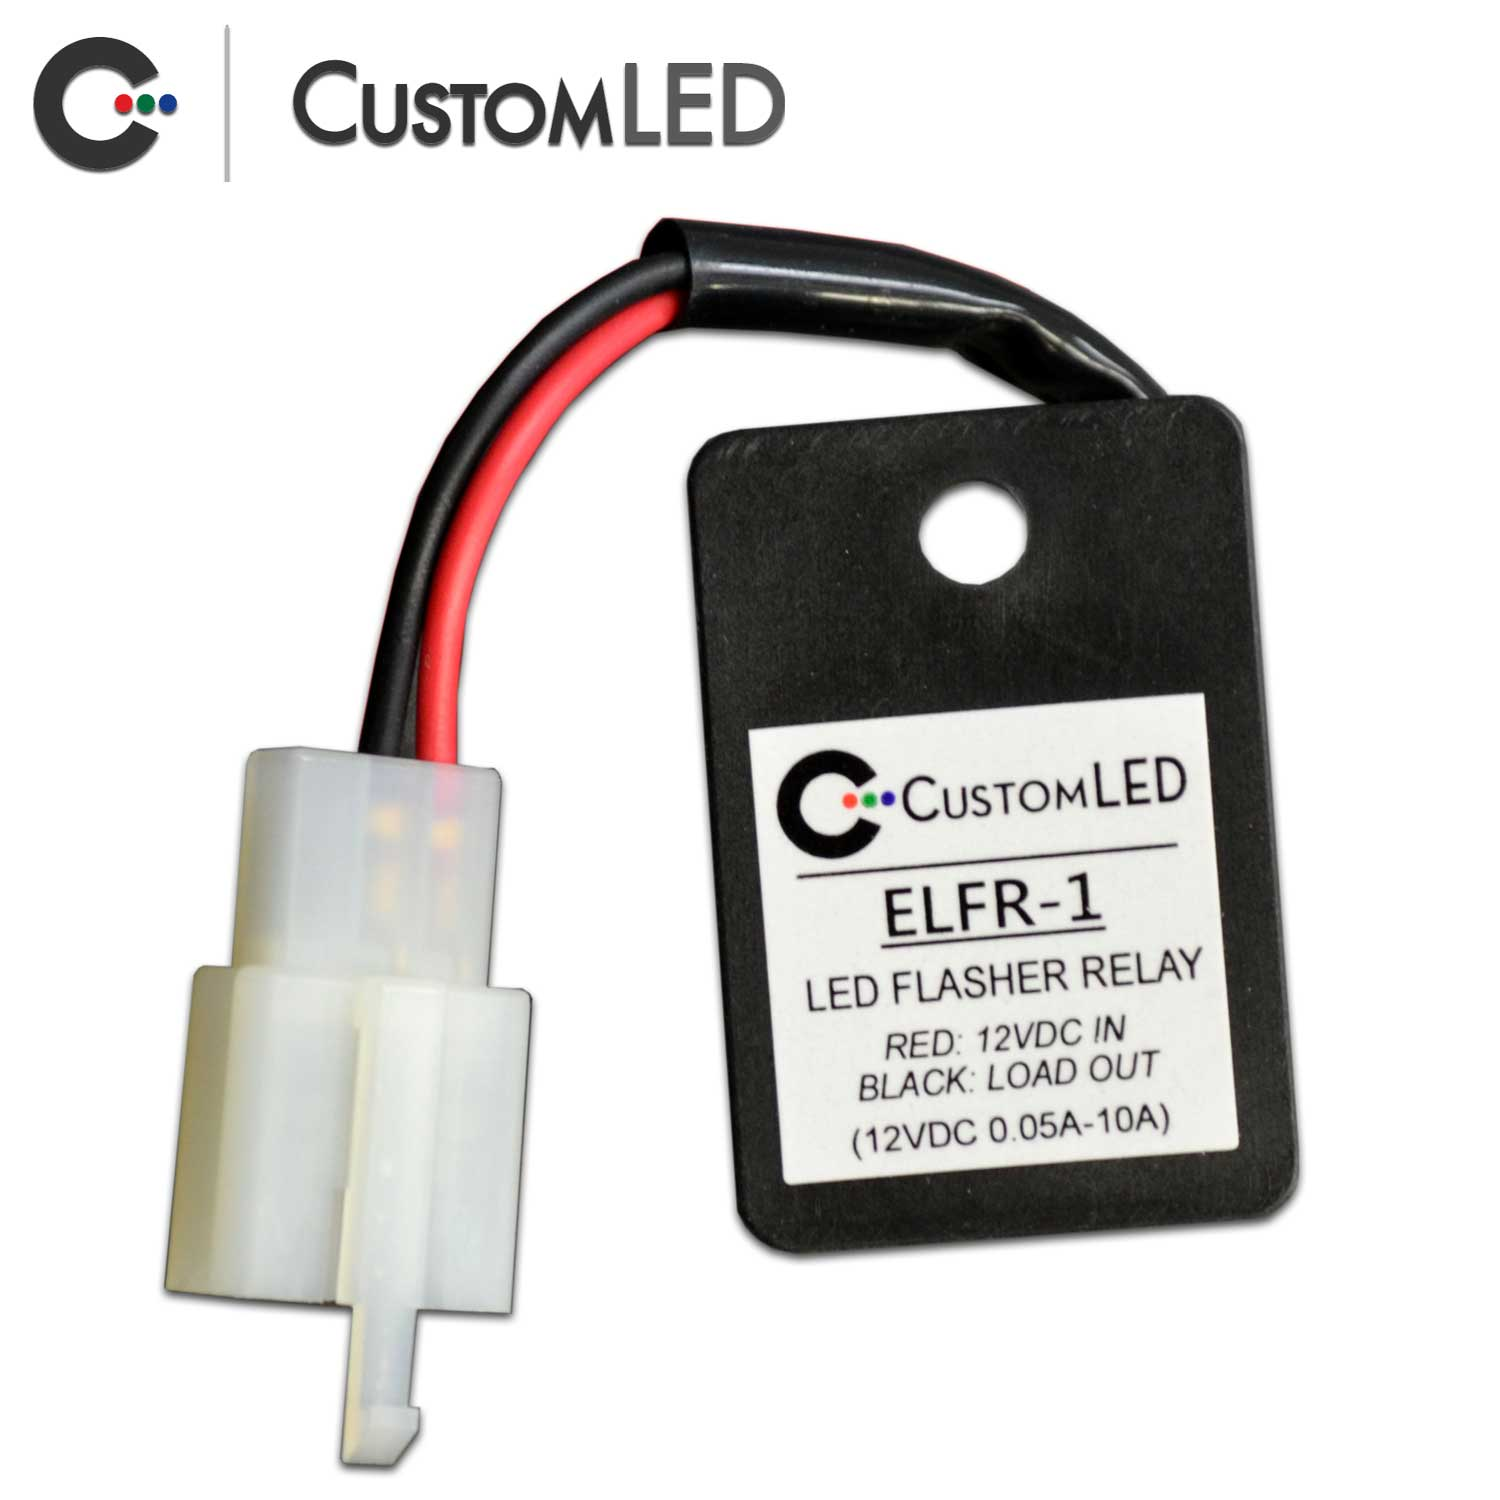 ELFR-1 Electronic LED Flasher Relay with OEM Connector ... on